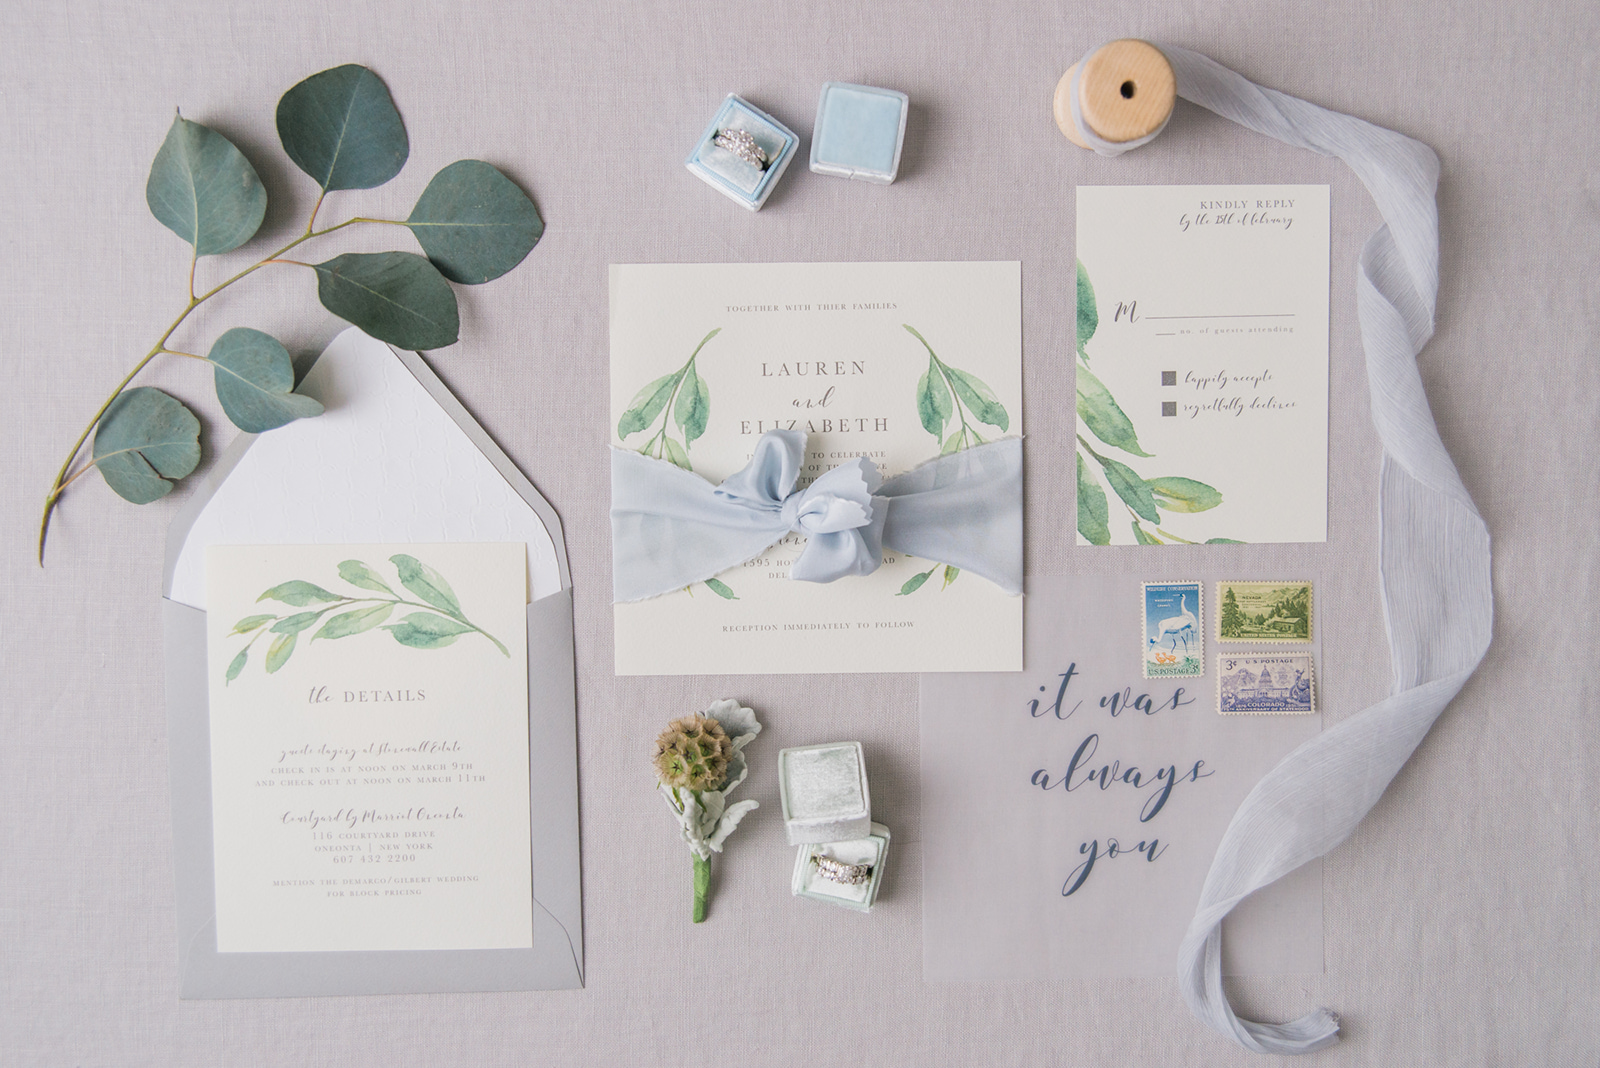 SIMPLE MODERN WEDDING INVITATION PHOTO SIMPLE RING BOX AND WEDDING STATIONARIES